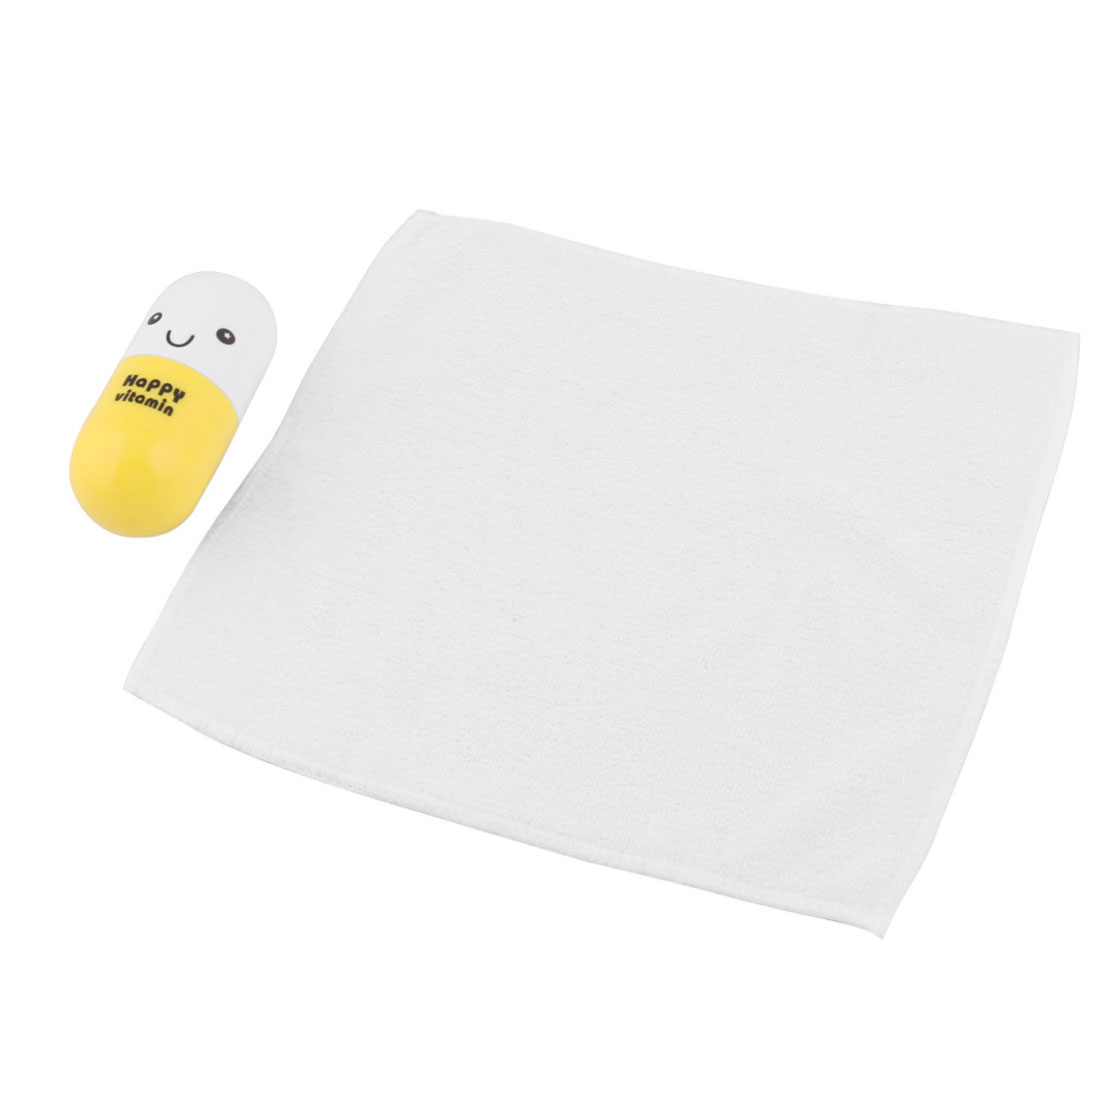 Travel Swimming Cotton Blends Shaped Box Facecloth Towel White Yellow